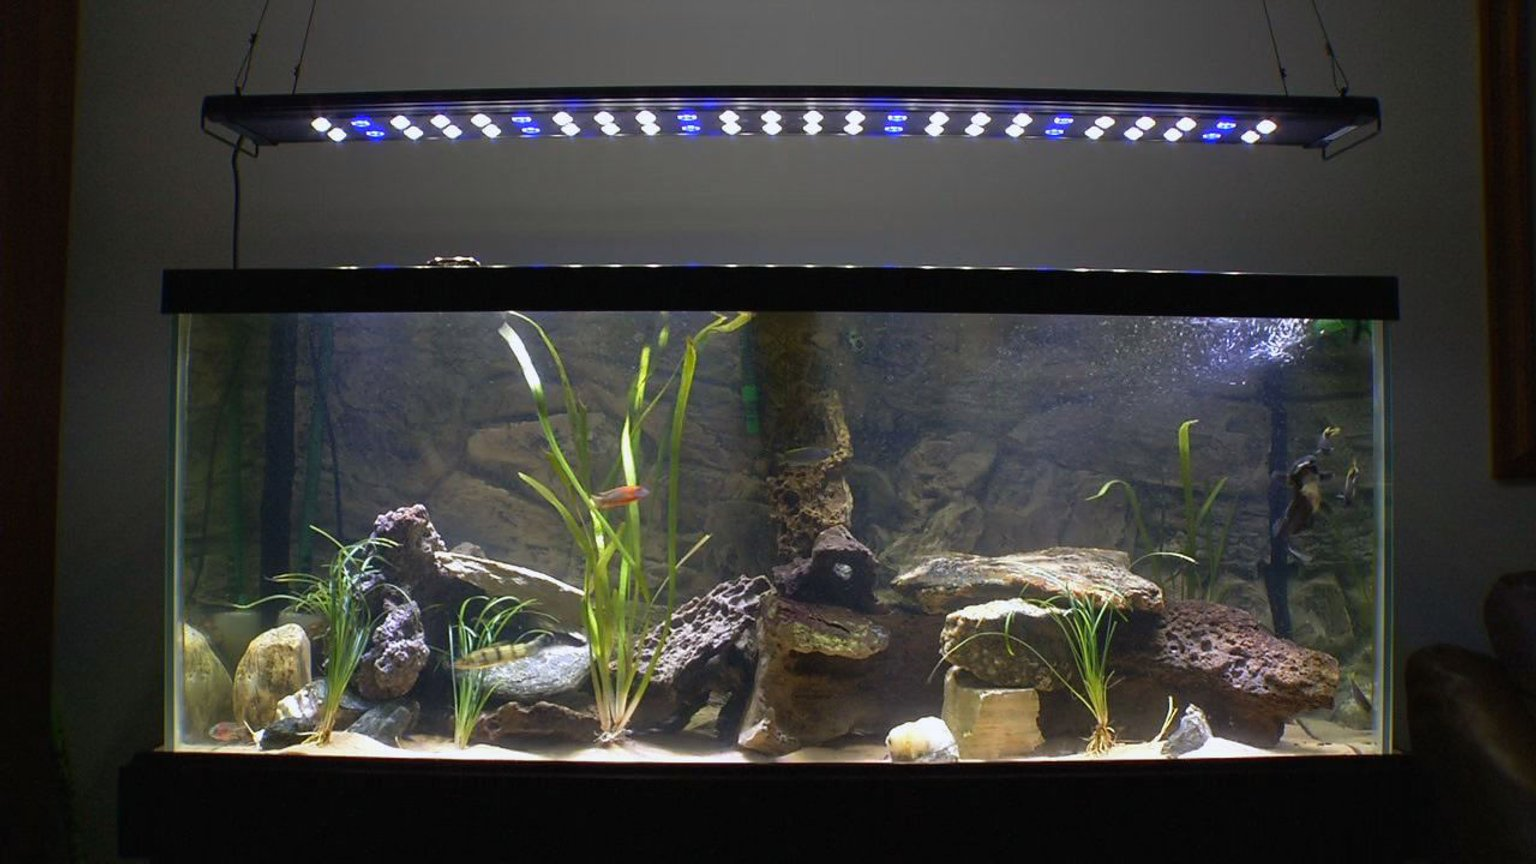 75 gallons planted tank (mostly live plants and fish) - Lake Malawi Cichlids with a couple other friends in a lightly planted rock-scaped 75 gallon Aquarium.